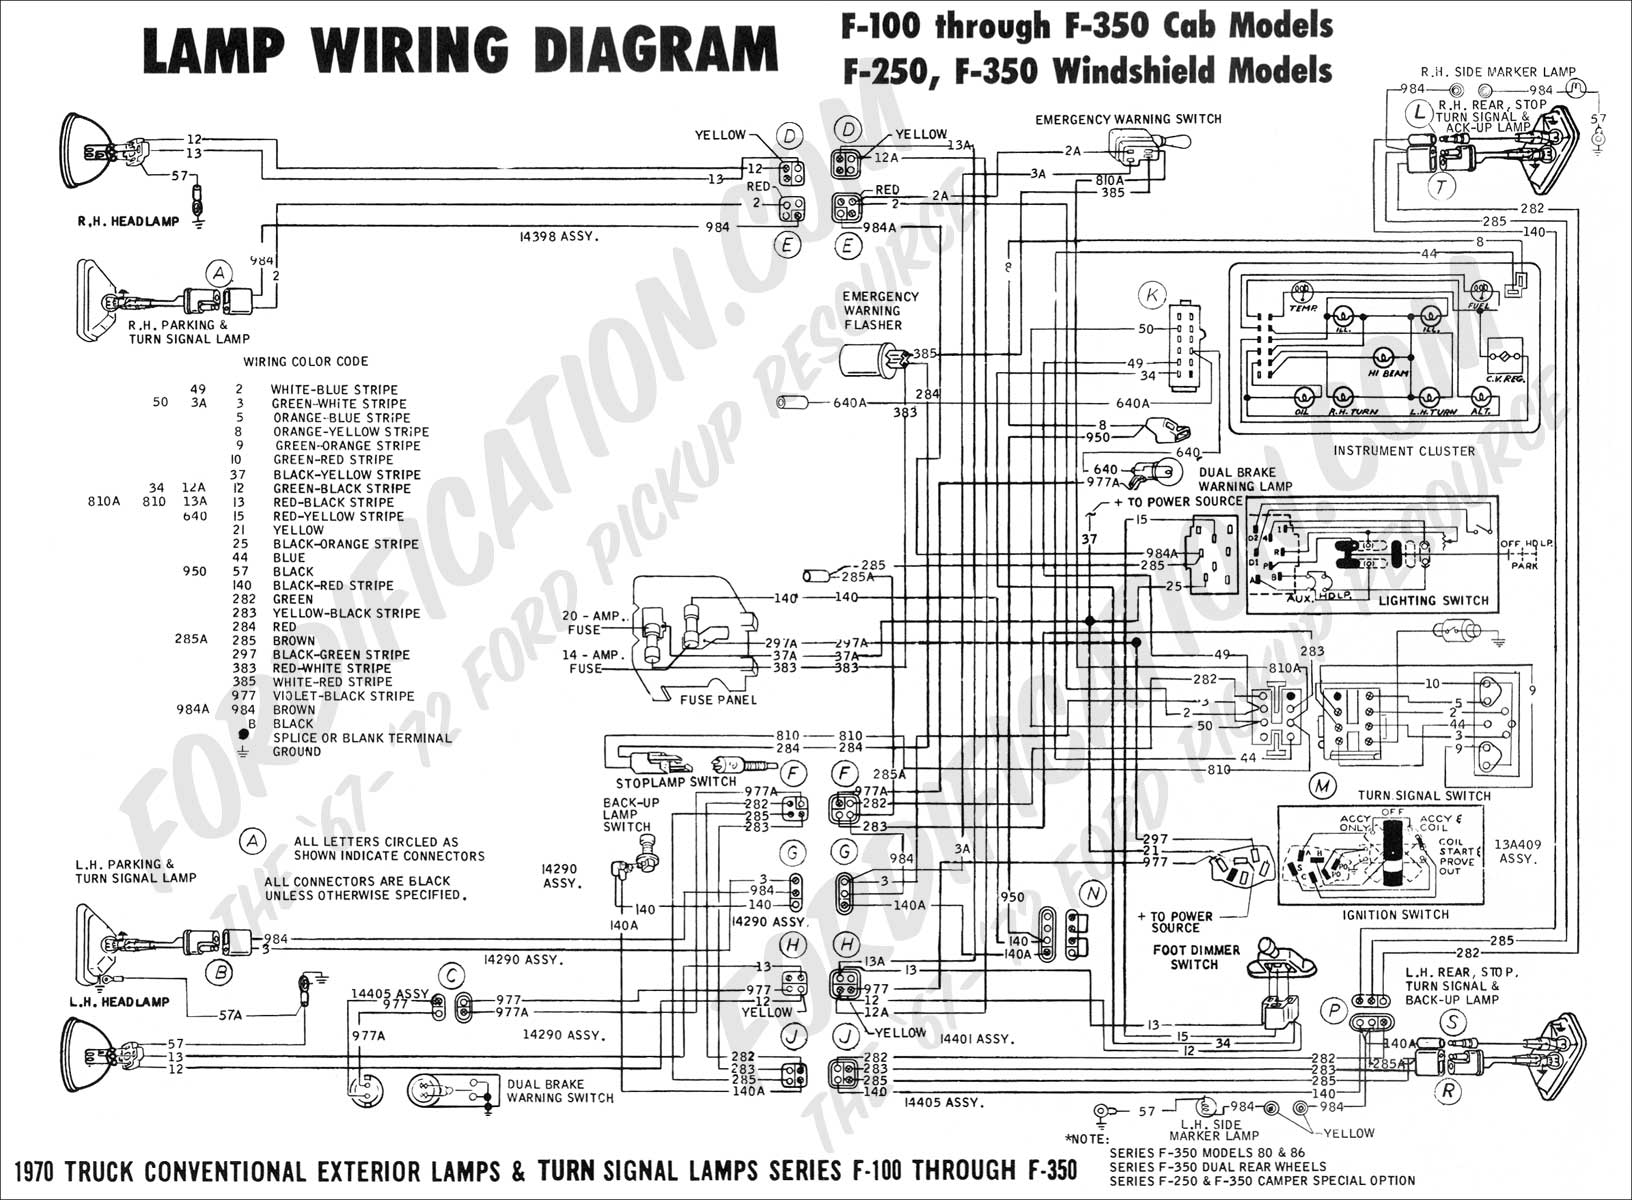 ford headlight assembly diagram wiring diagram Tom DeLonge Jen Jenkins ford headlight assembly diagram manual e booksford headlight assembly diagram wiring diagram2003 ford windstar headlight wiring